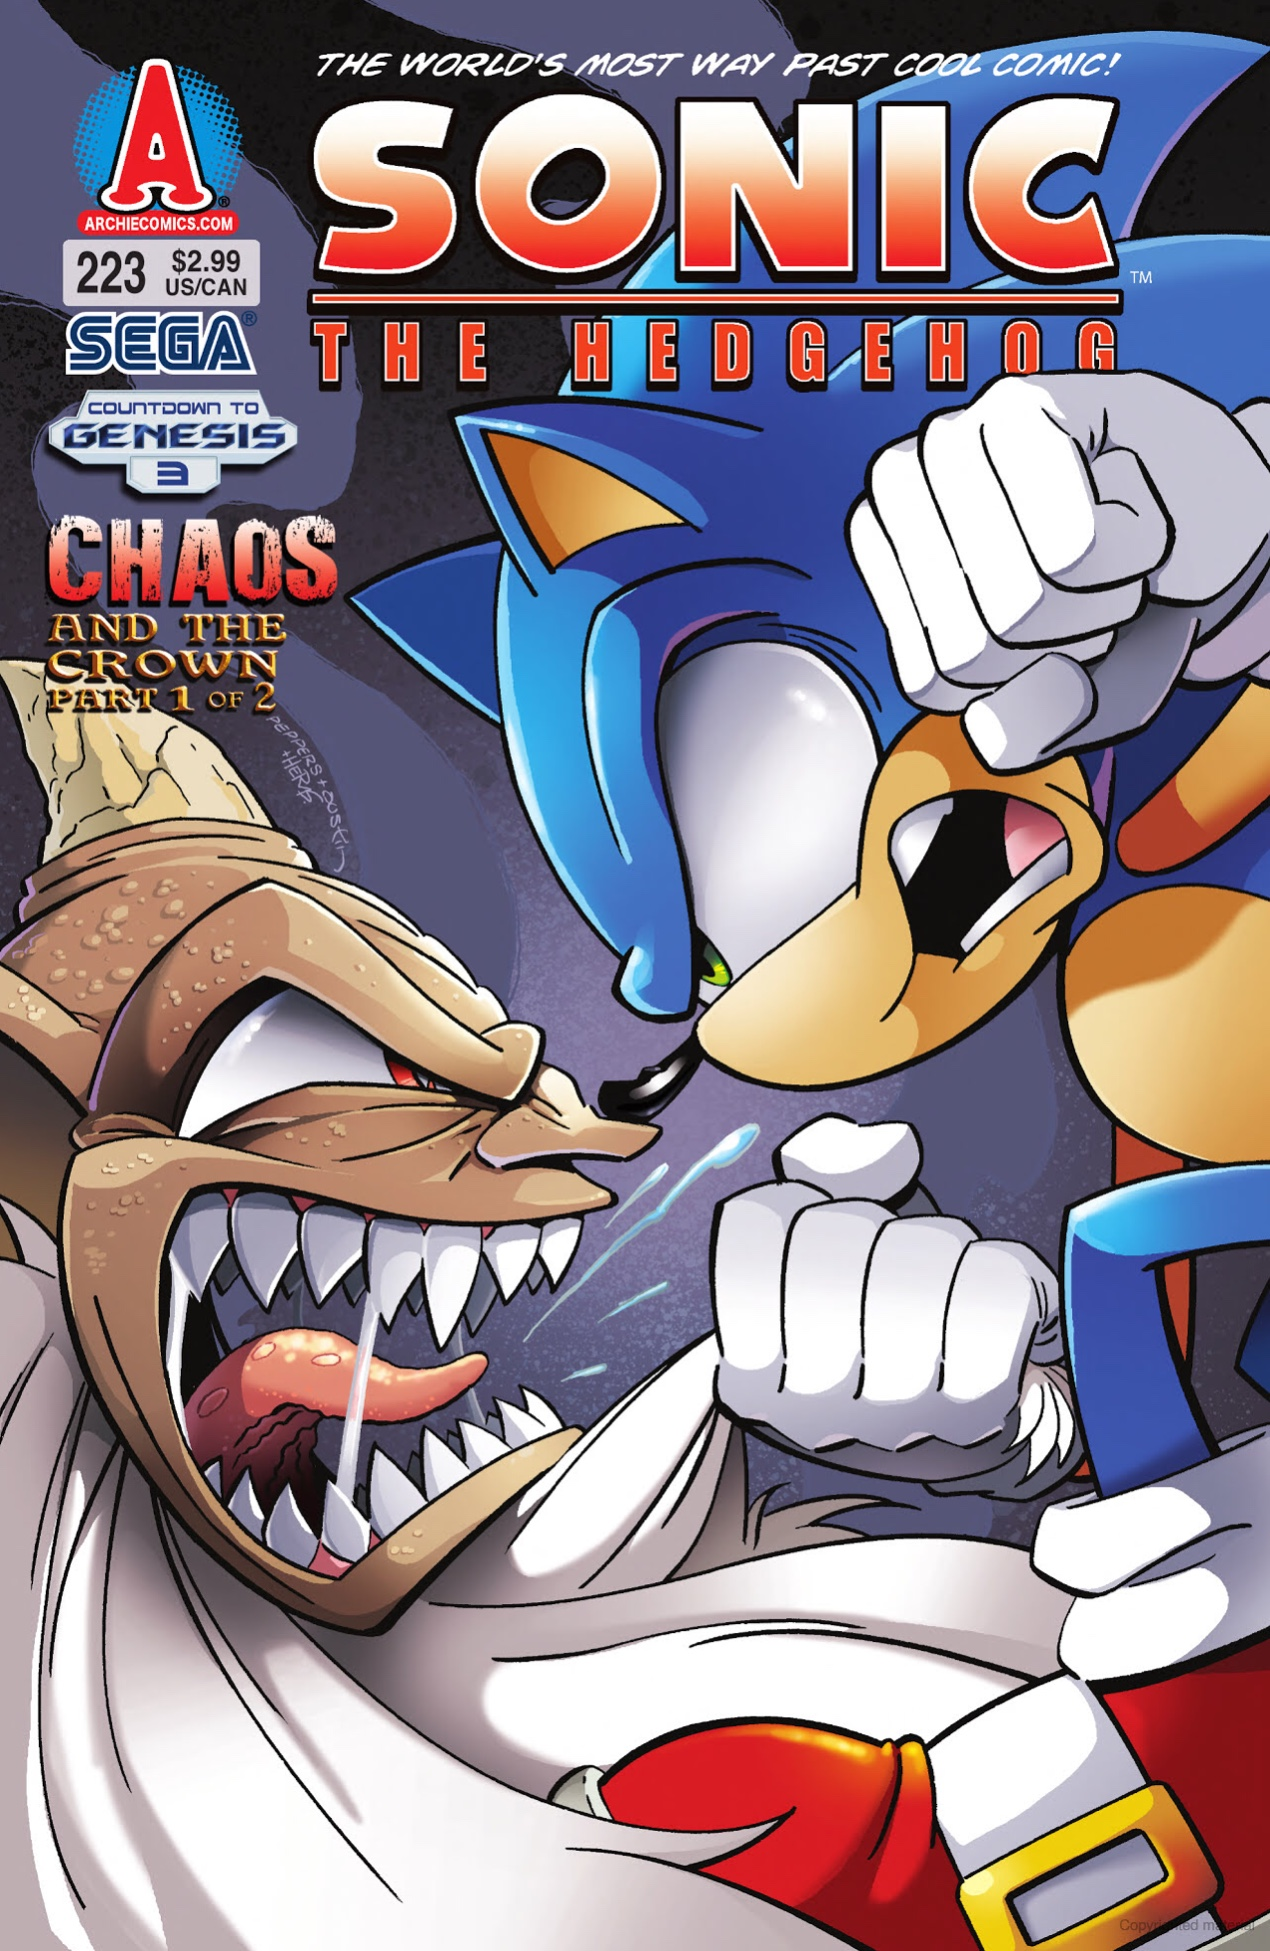 Archie Sonic the Hedgehog Issue 223